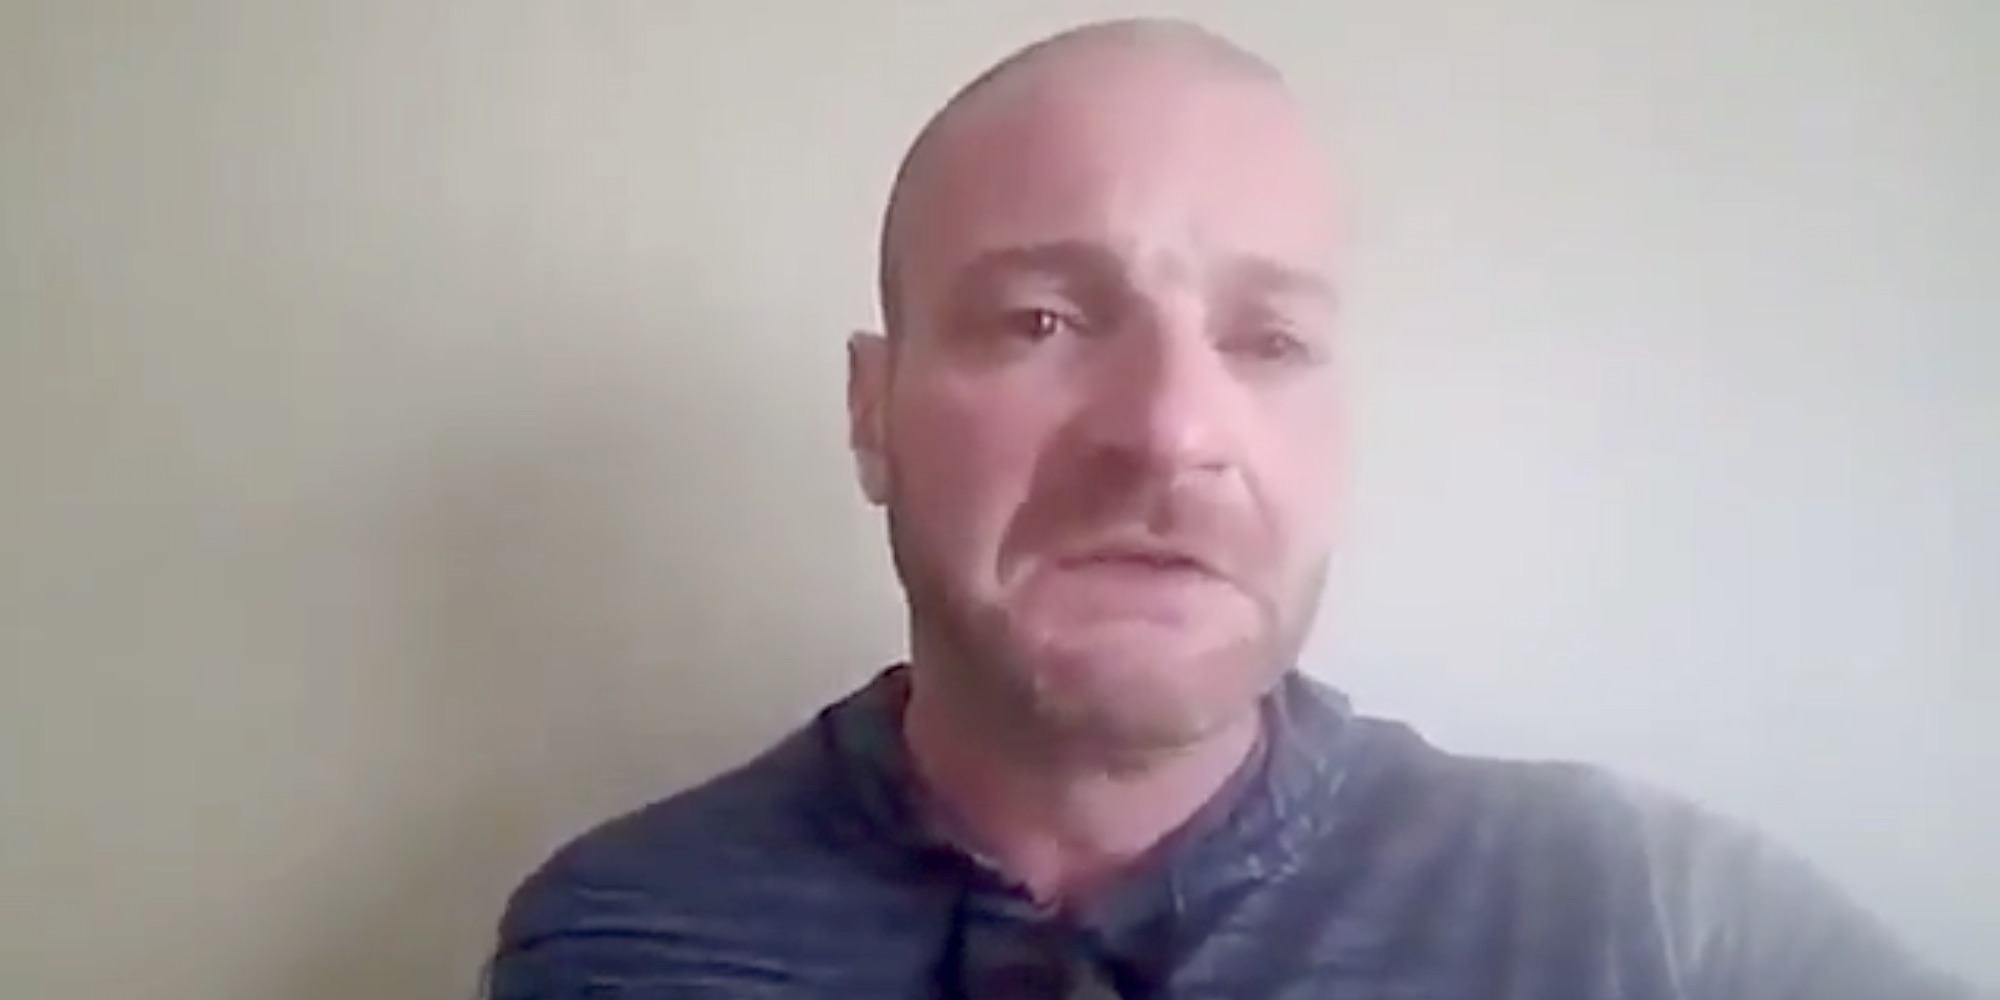 Crying US neo-Nazi found guilty of rape threat in far